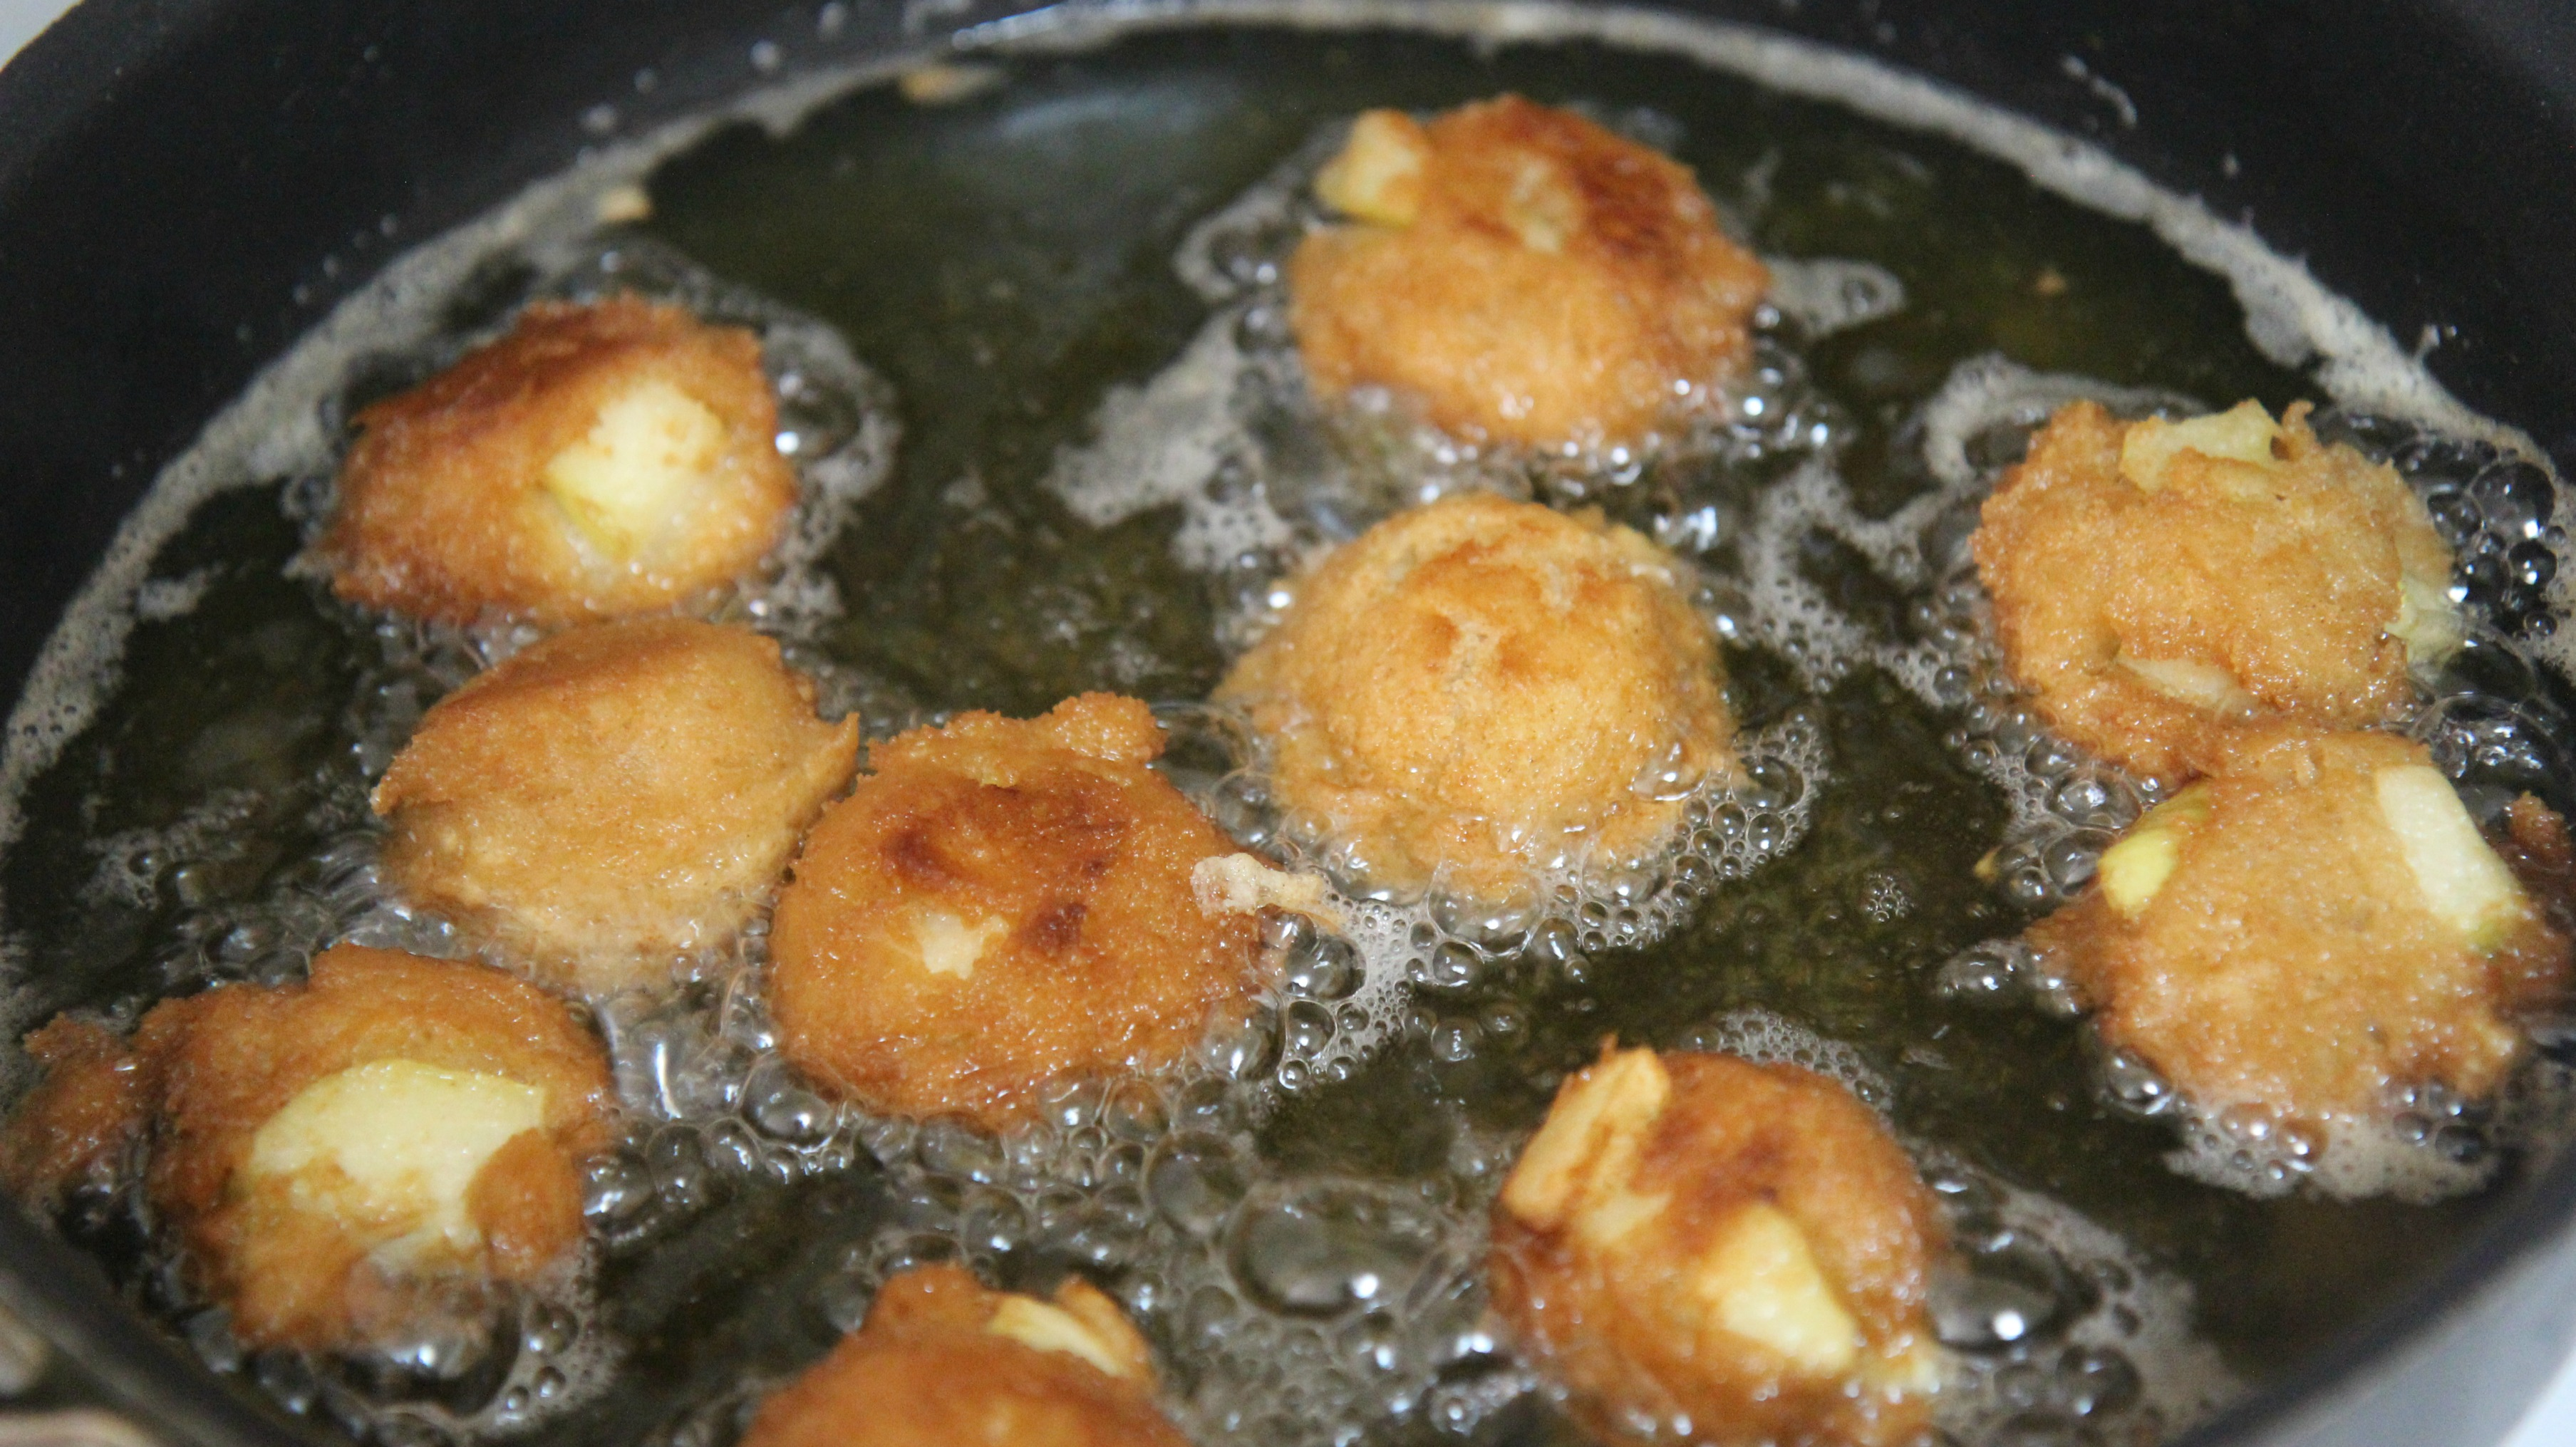 Deep fry the apple fritters to a nice golden brown color